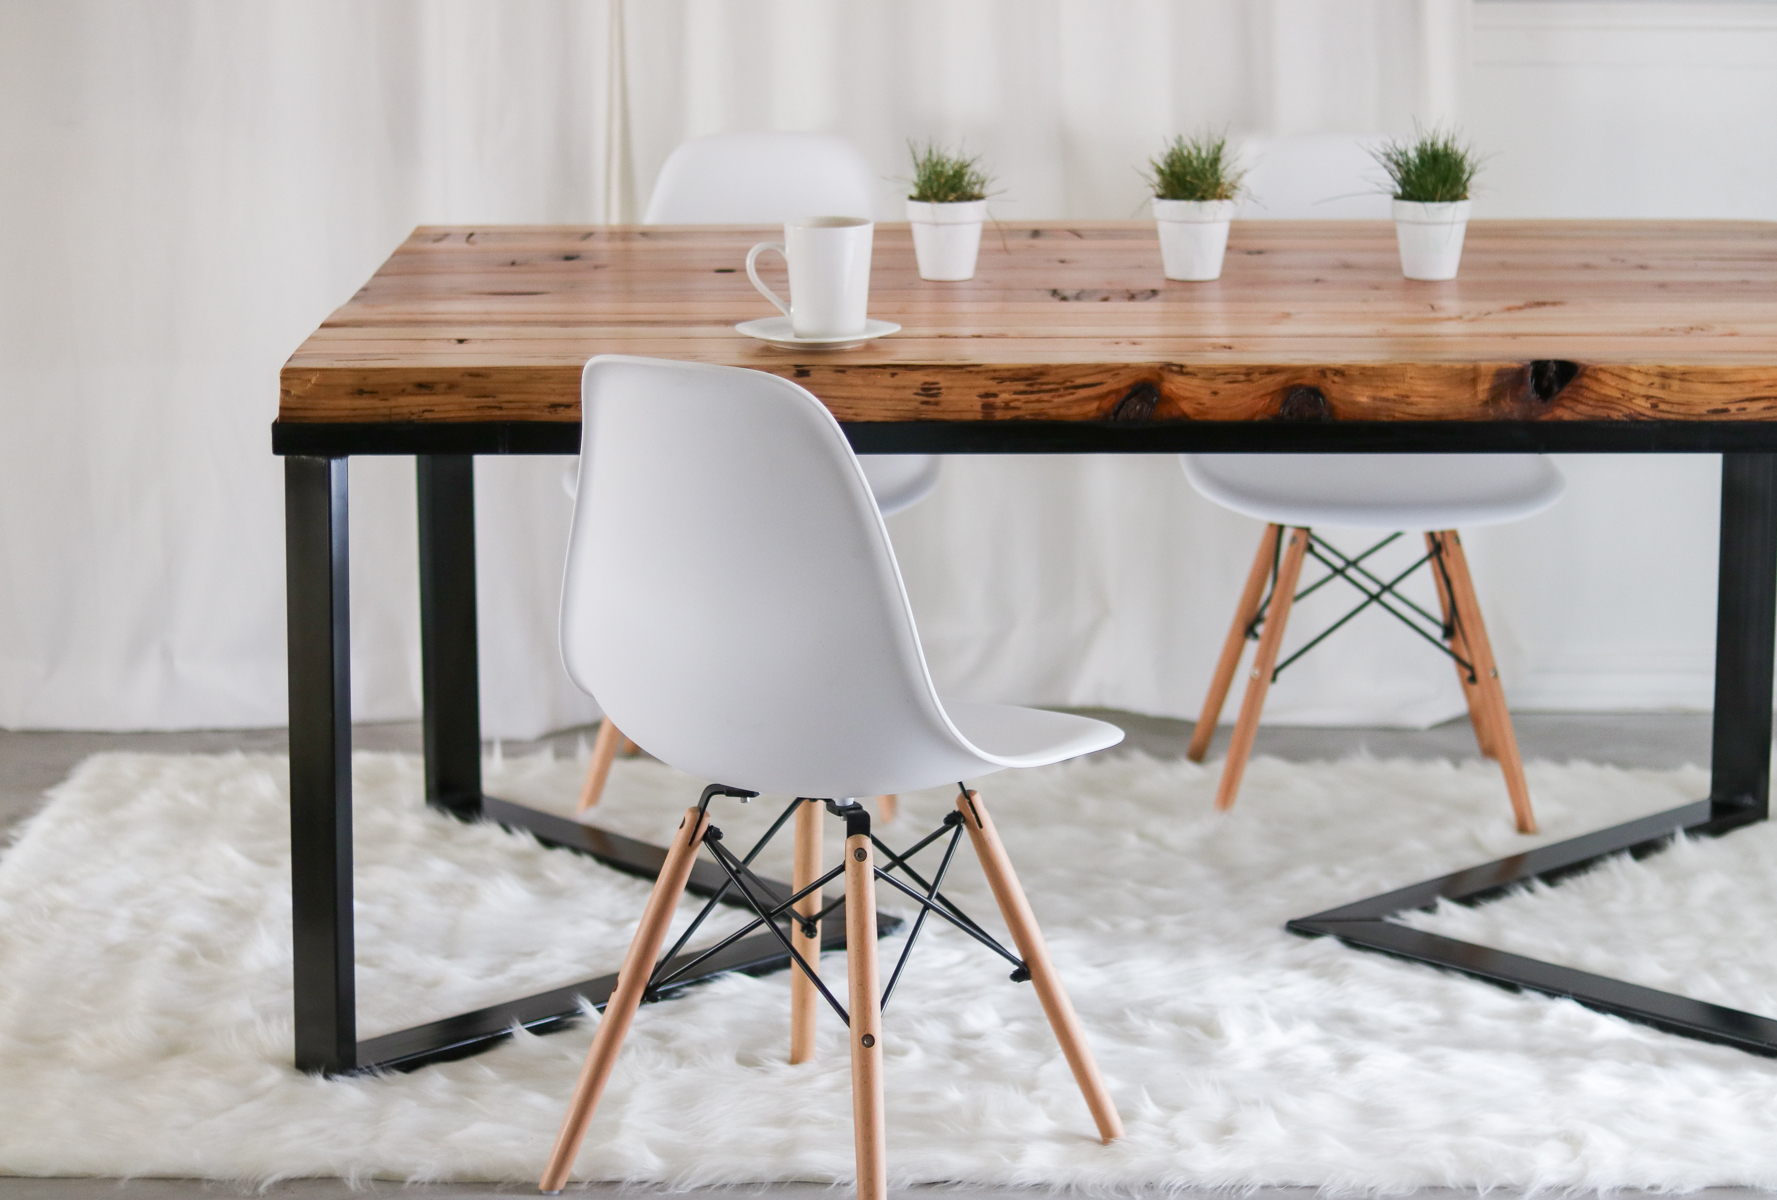 Trendy How I Made My Dining Table – Under $60 Diy Table – Scandinavian With Iron Wood Dining Tables (View 27 of 30)